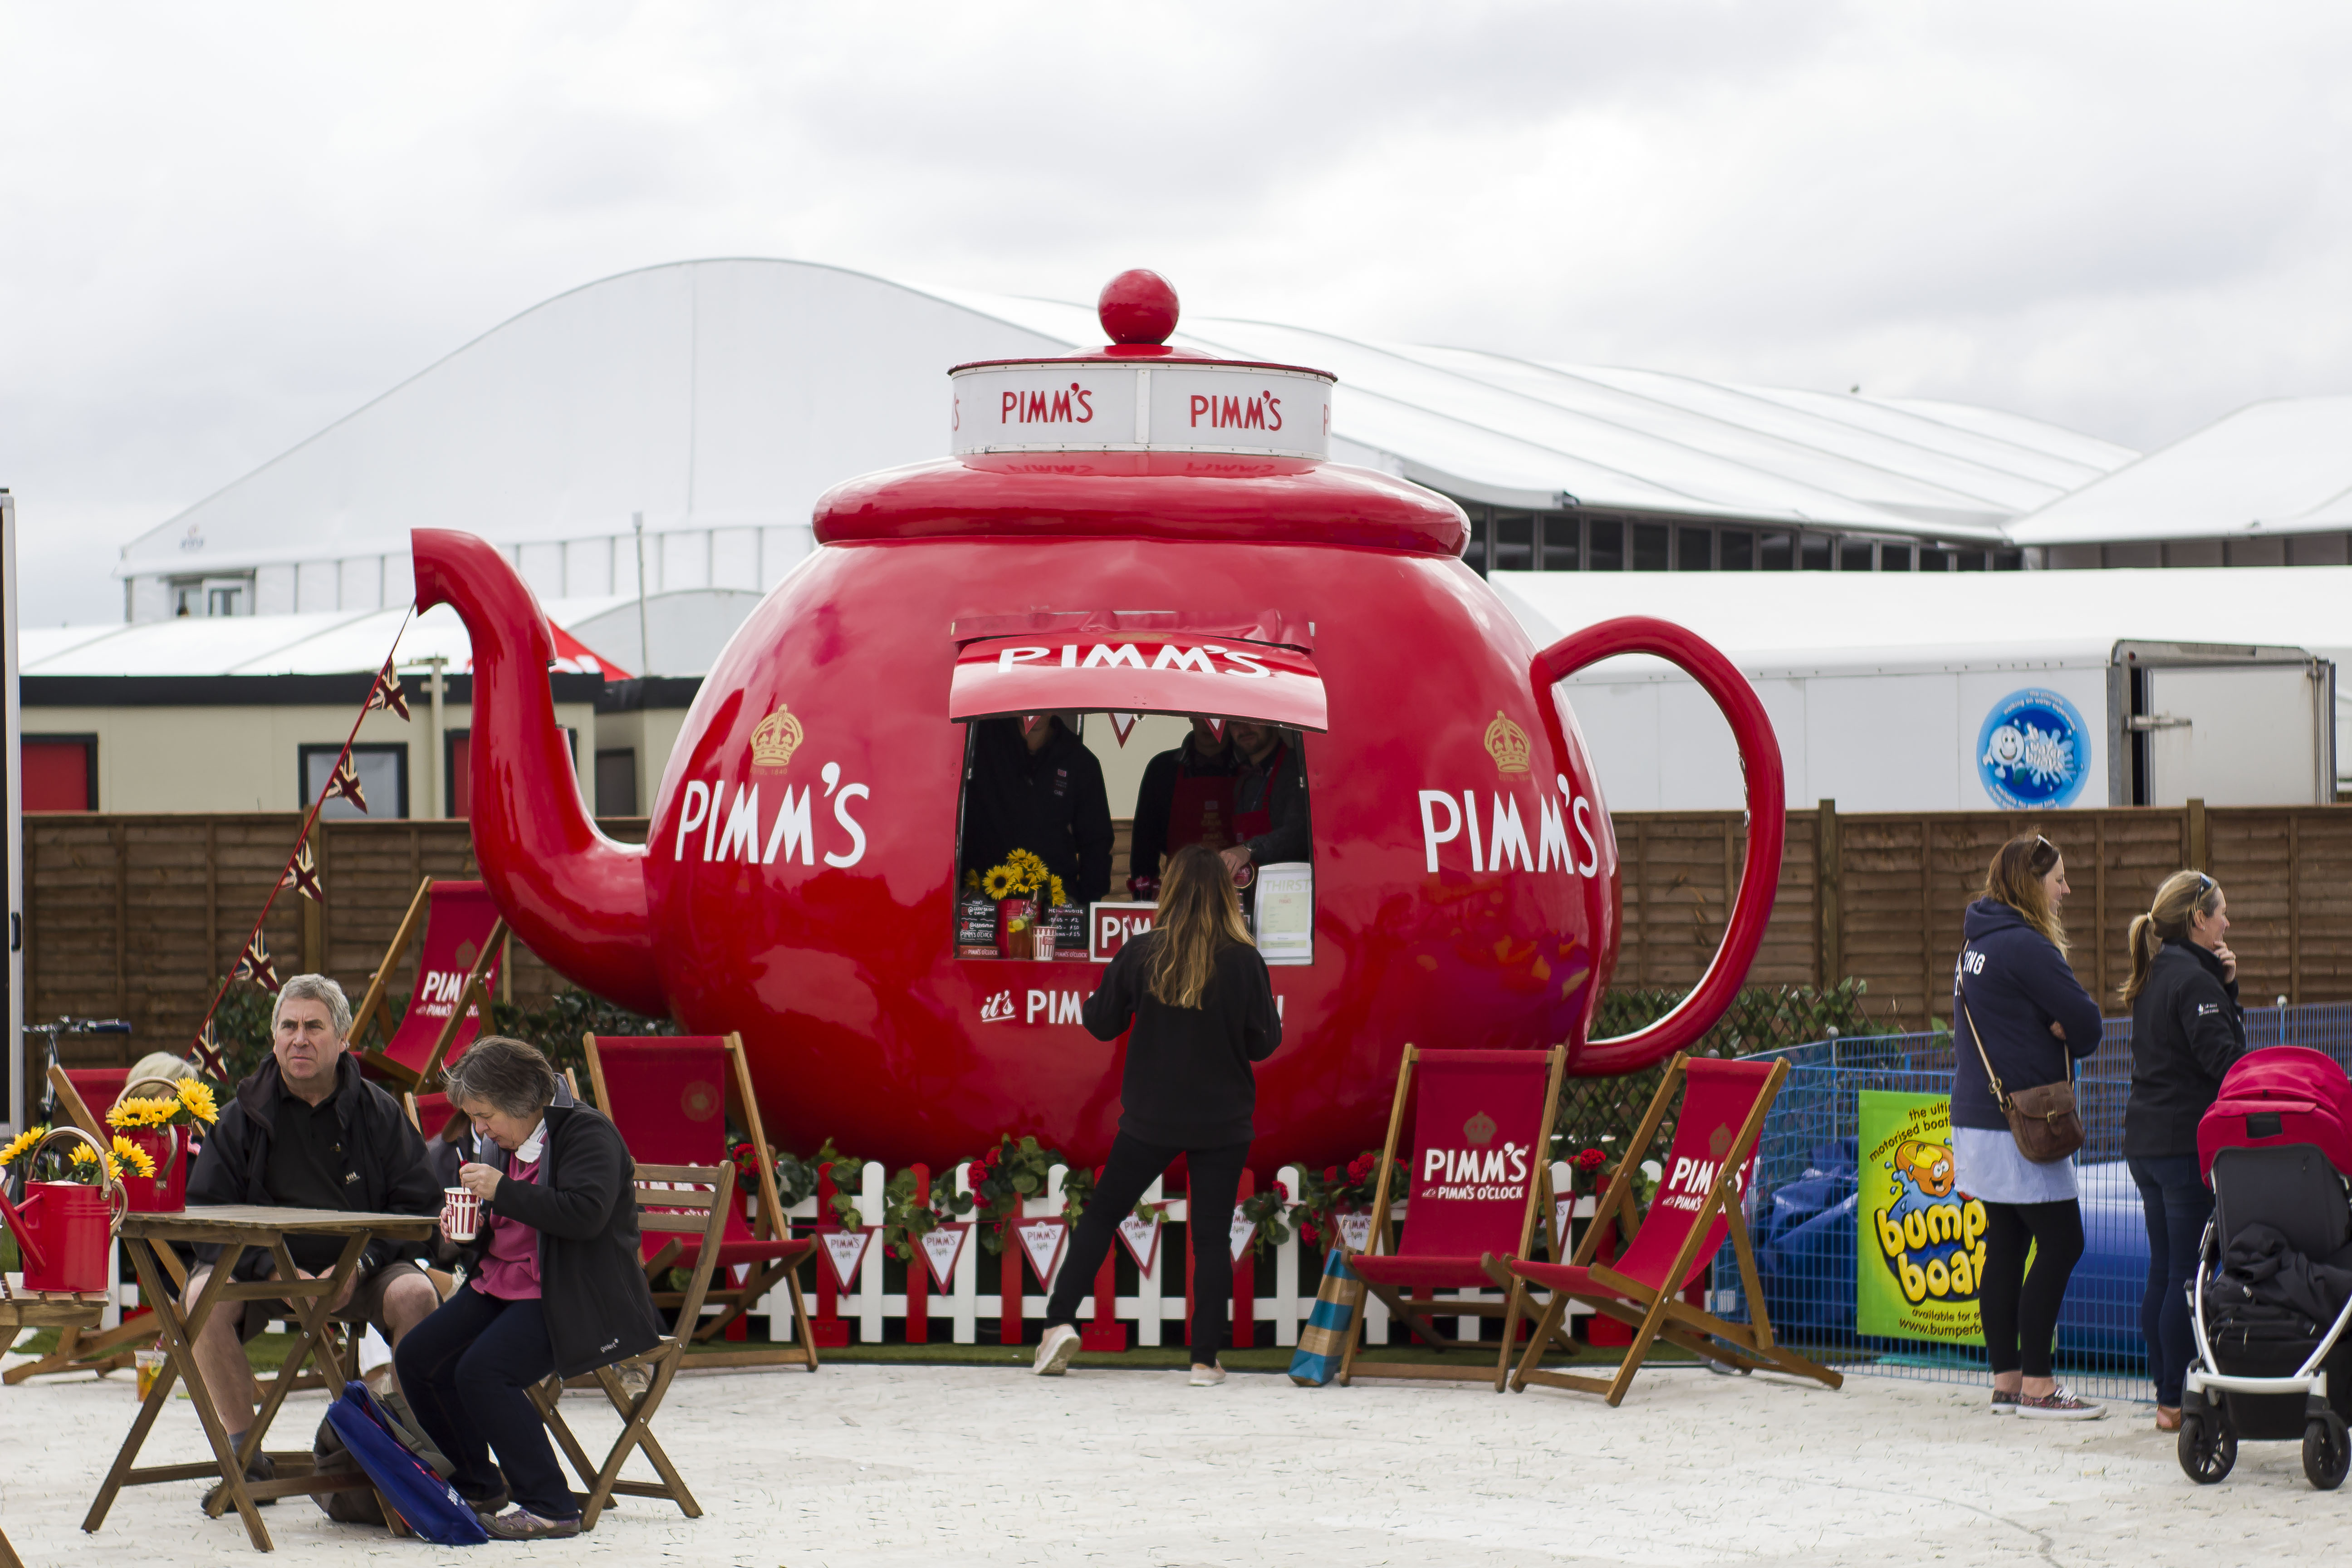 Pimms stand at soton boat show